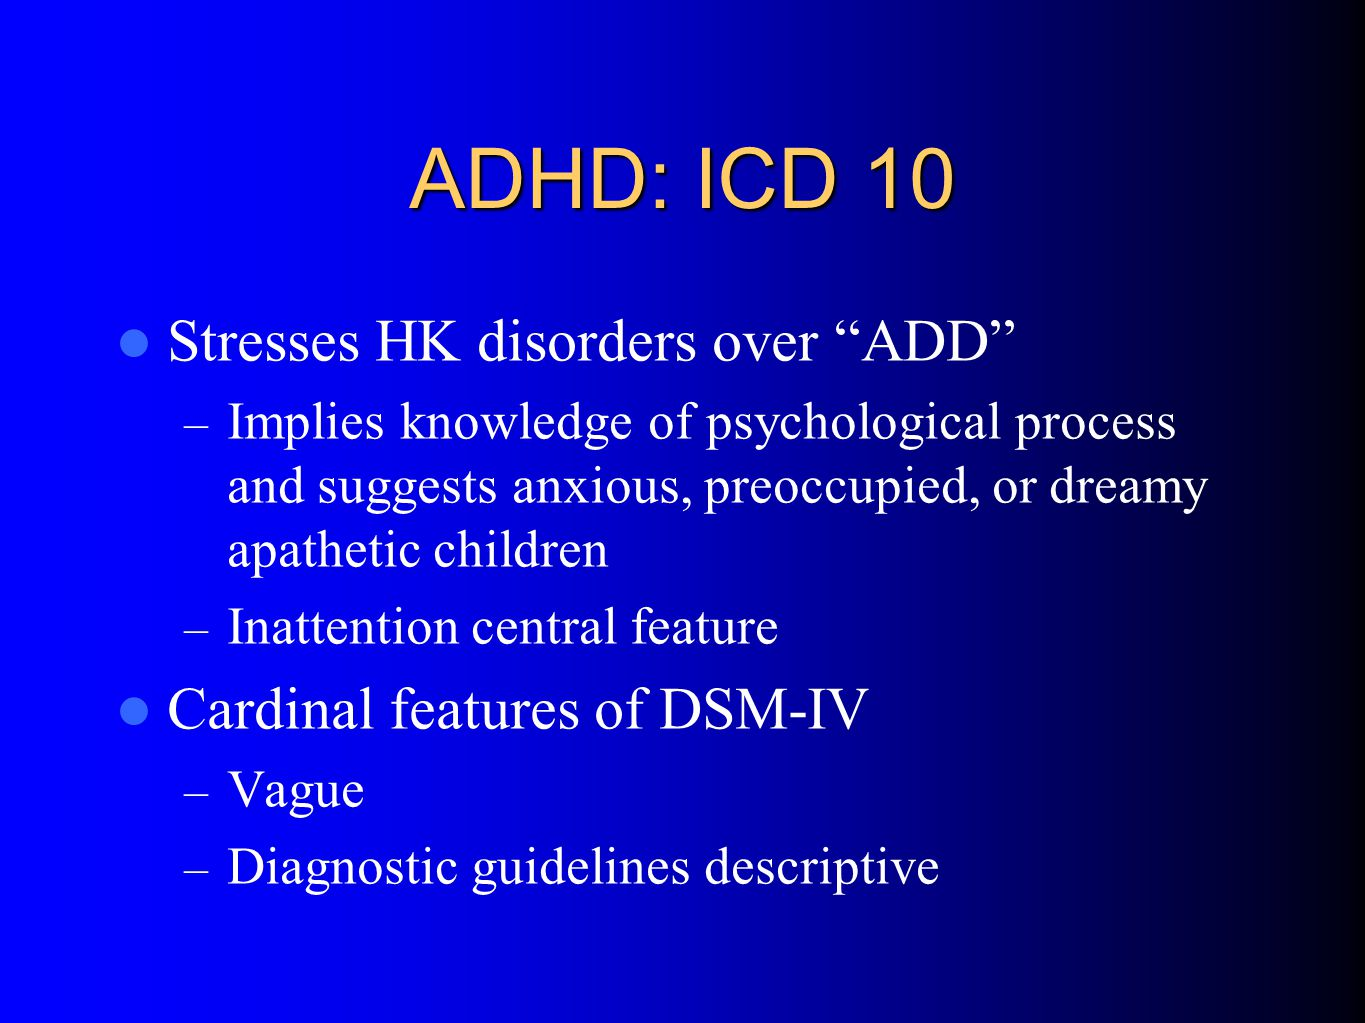 ADHD: ICD 10 Stresses HK disorders over ADD – Implies knowledge of psychological process and suggests anxious, preoccupied, or dreamy apathetic children – Inattention central feature Cardinal features of DSM-IV – Vague – Diagnostic guidelines descriptive